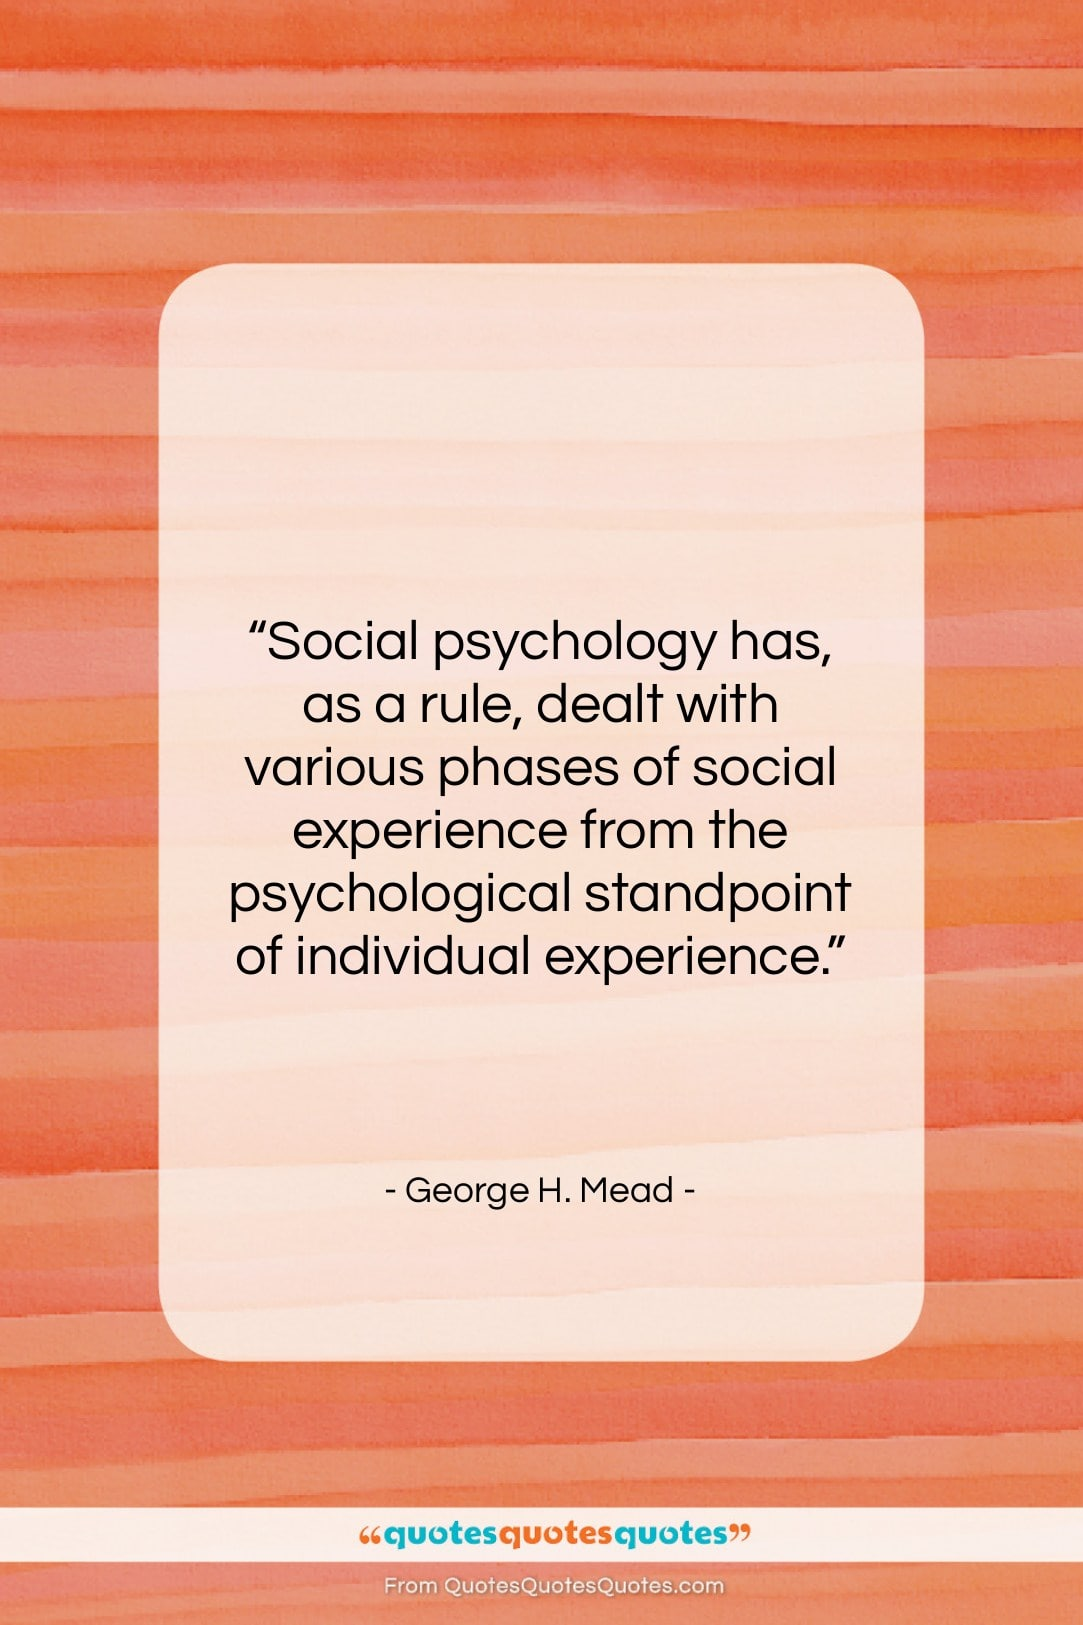 """George H. Mead quote: """"Social psychology has, as a rule, dealt…""""- at QuotesQuotesQuotes.com"""